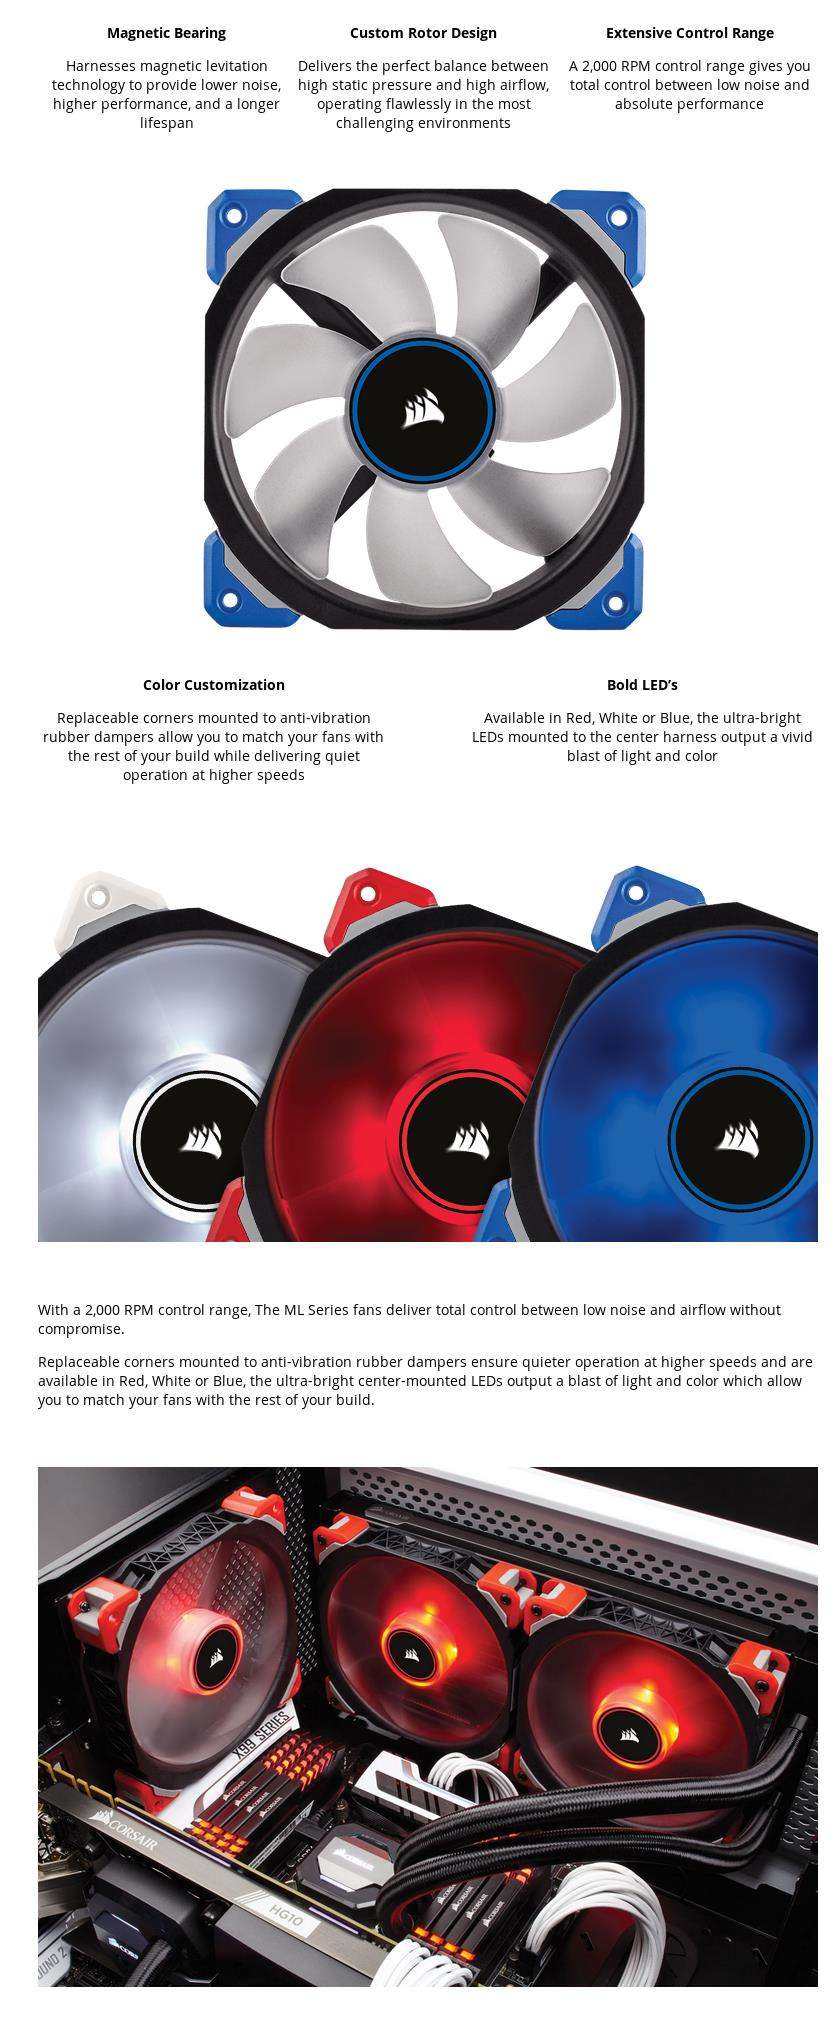 A large marketing image providing additional information about the product Corsair ML120 Pro 120mm Mag-Lev Blue LED Cooling Fan - Additional alt info not provided